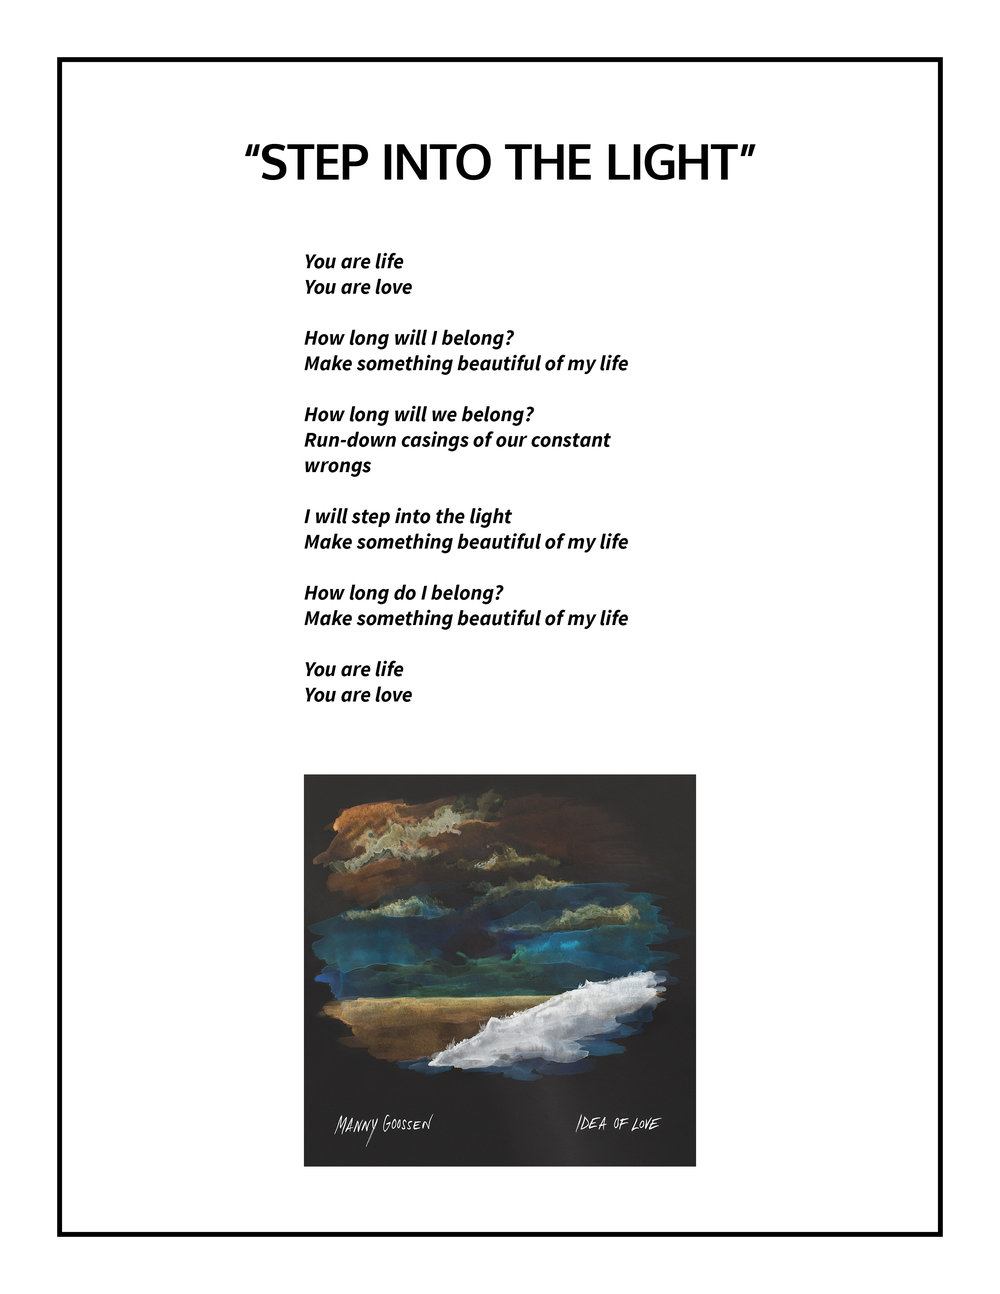 Step Into the Light Lyrics